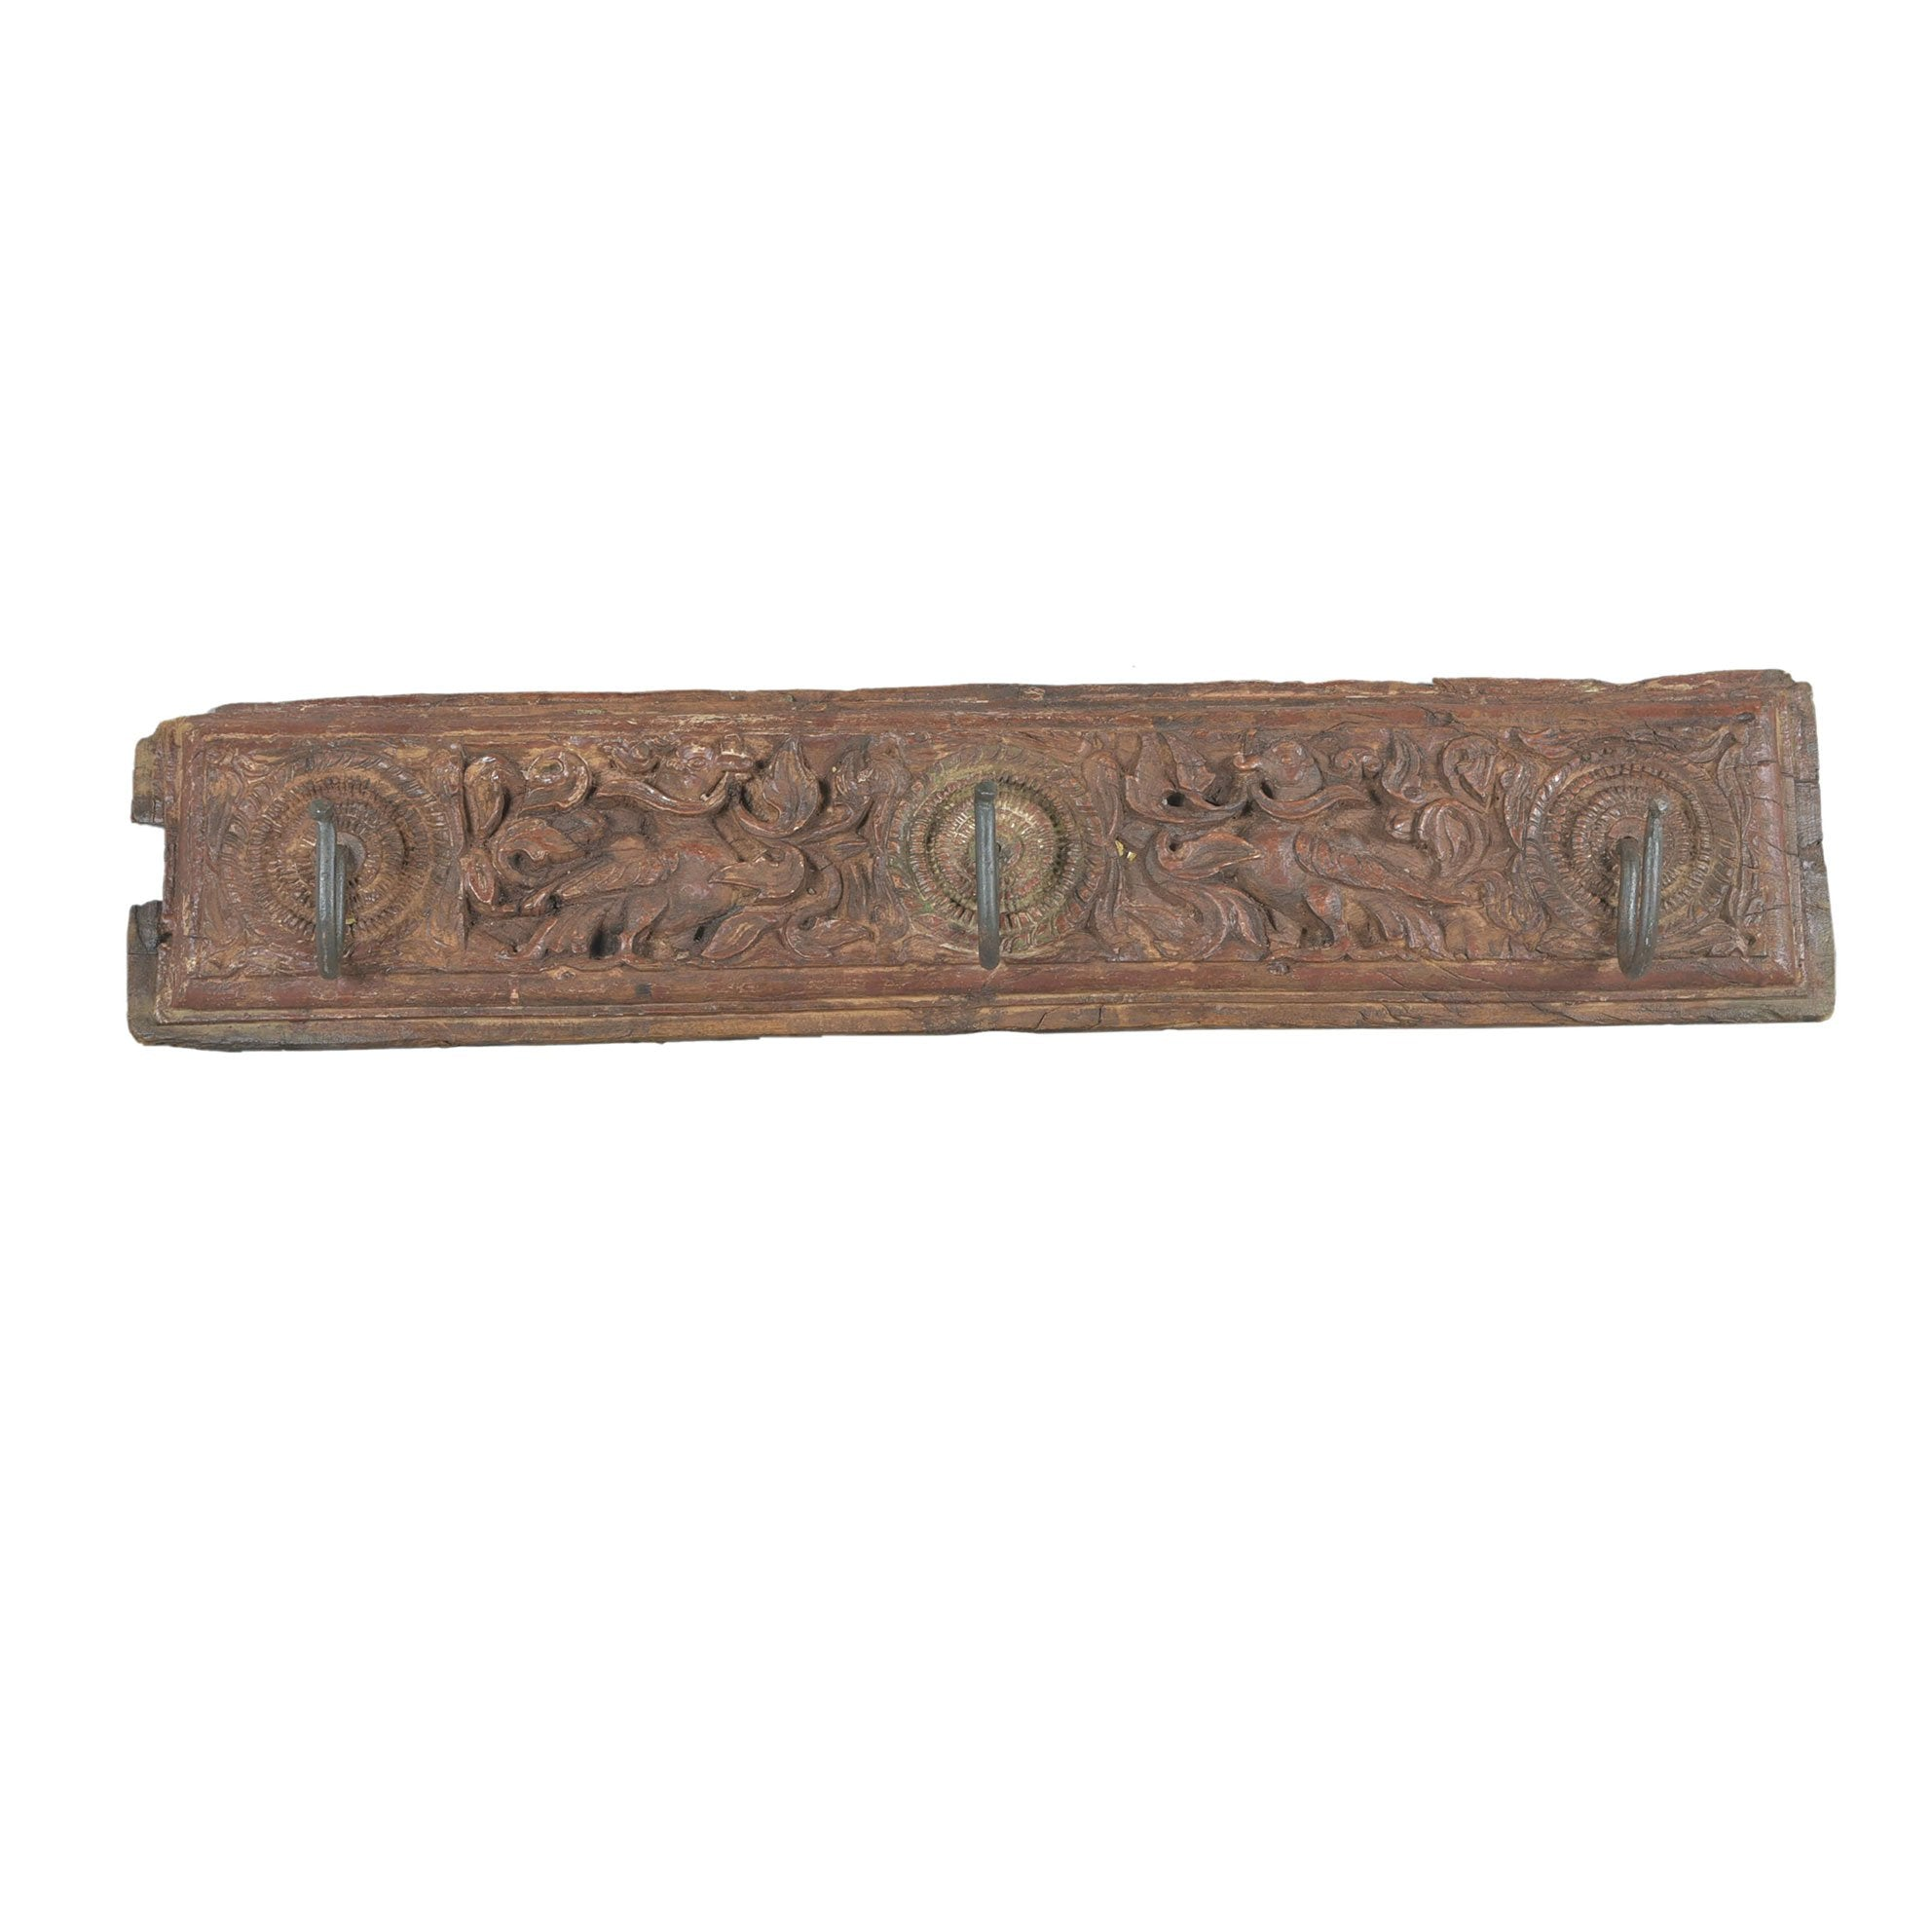 Carved Teak Coat Hook from Kerala - 19thC | Indigo Oriental Antiques